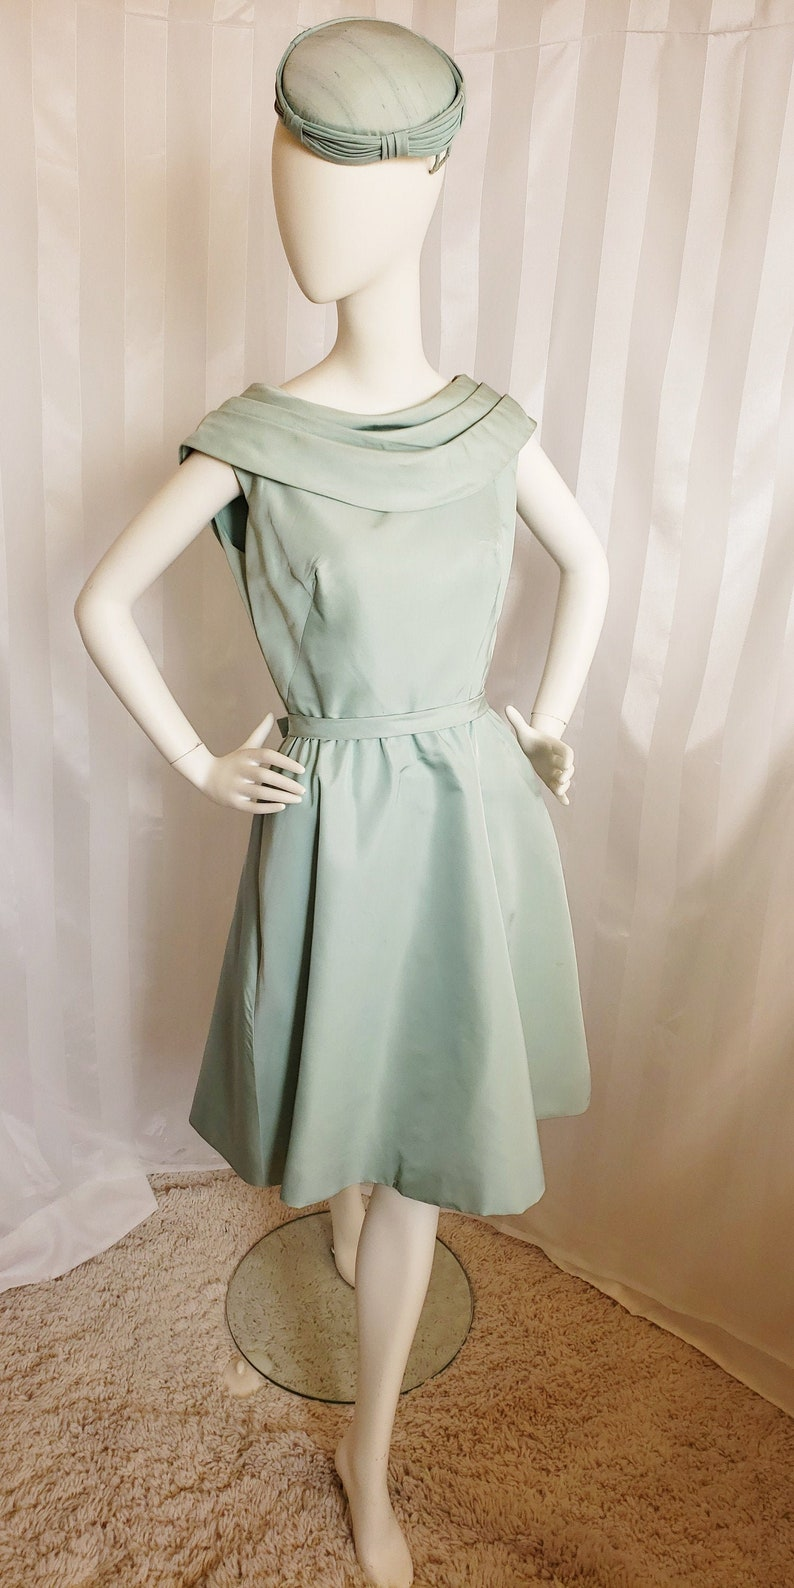 500 Vintage Style Dresses for Sale | Vintage Inspired Dresses Mid-Century